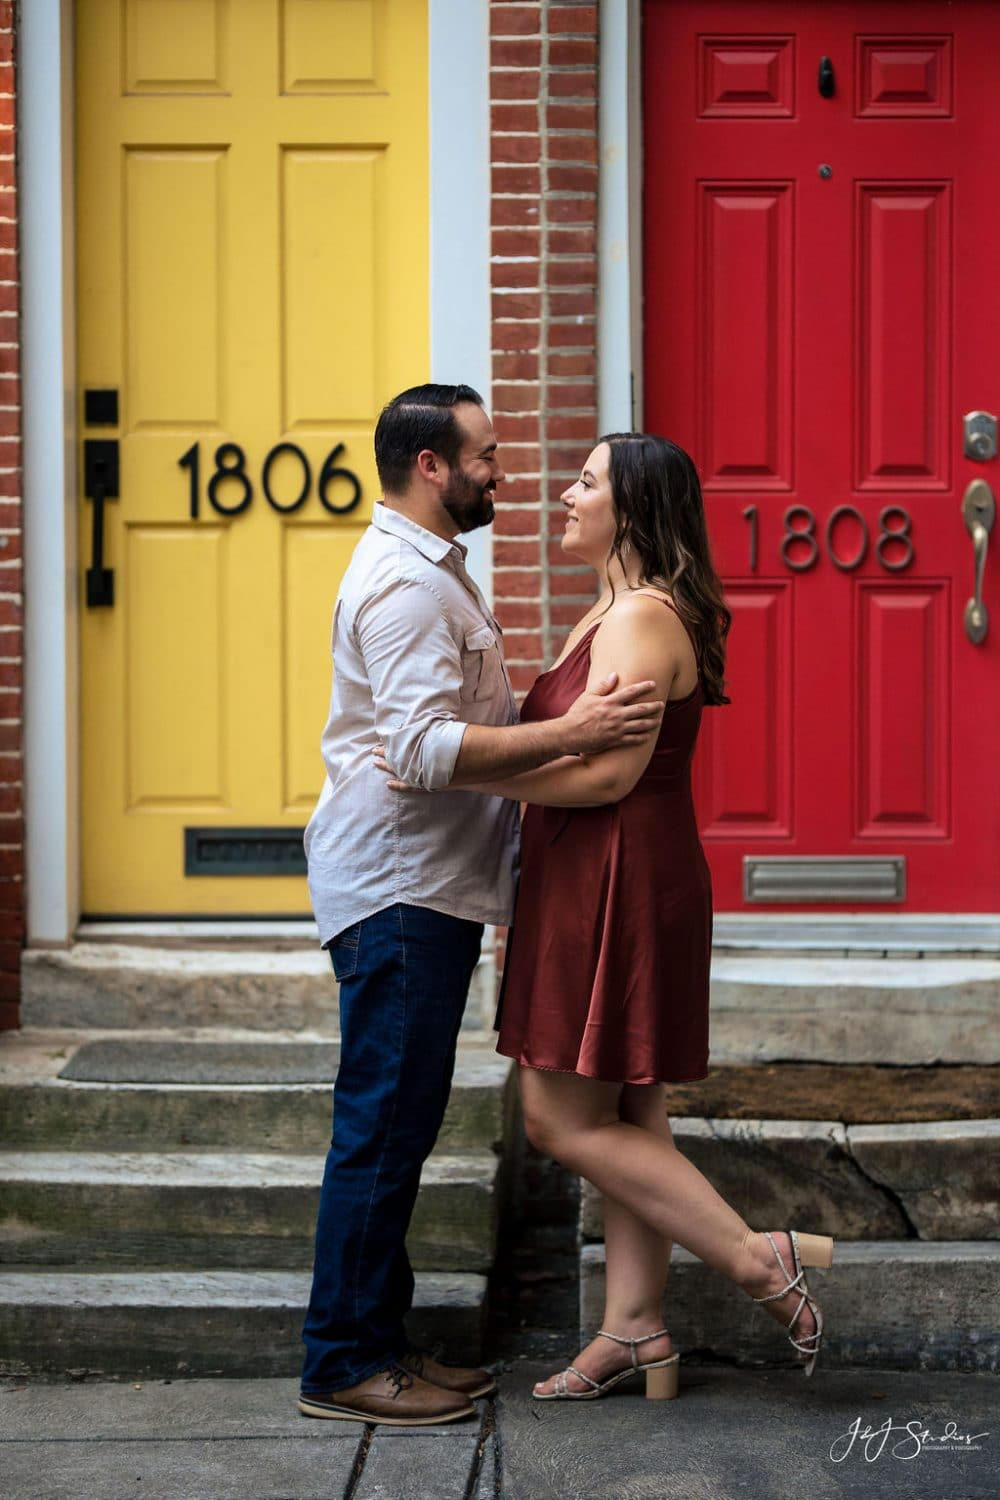 Sara and James near red and yellow door Rittenhouse Square and Addison Street Engagement Shot By John Ryan